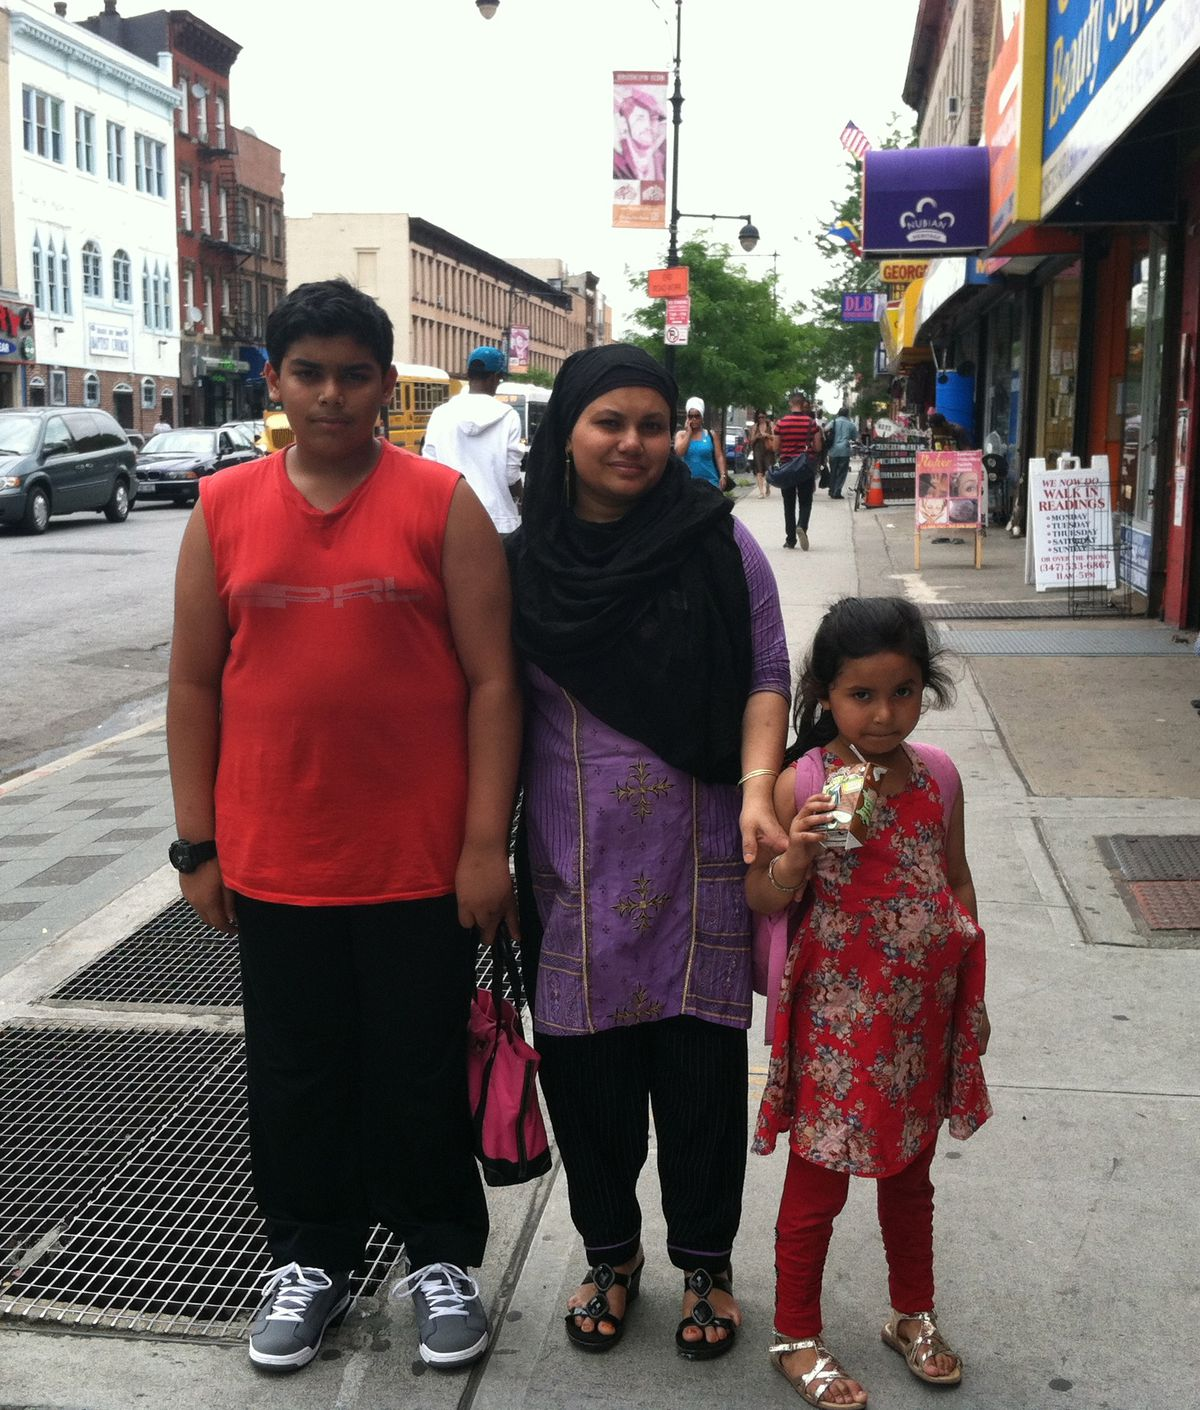 Safwan Akhder says the only summer program she heard about from her daughter Sazidah's school, P.S. 93, is too far away, so she'll stay home and read books with her brother Sumi, a rising sophomore at Brooklyn Tech who wants to join a summer soccer team.